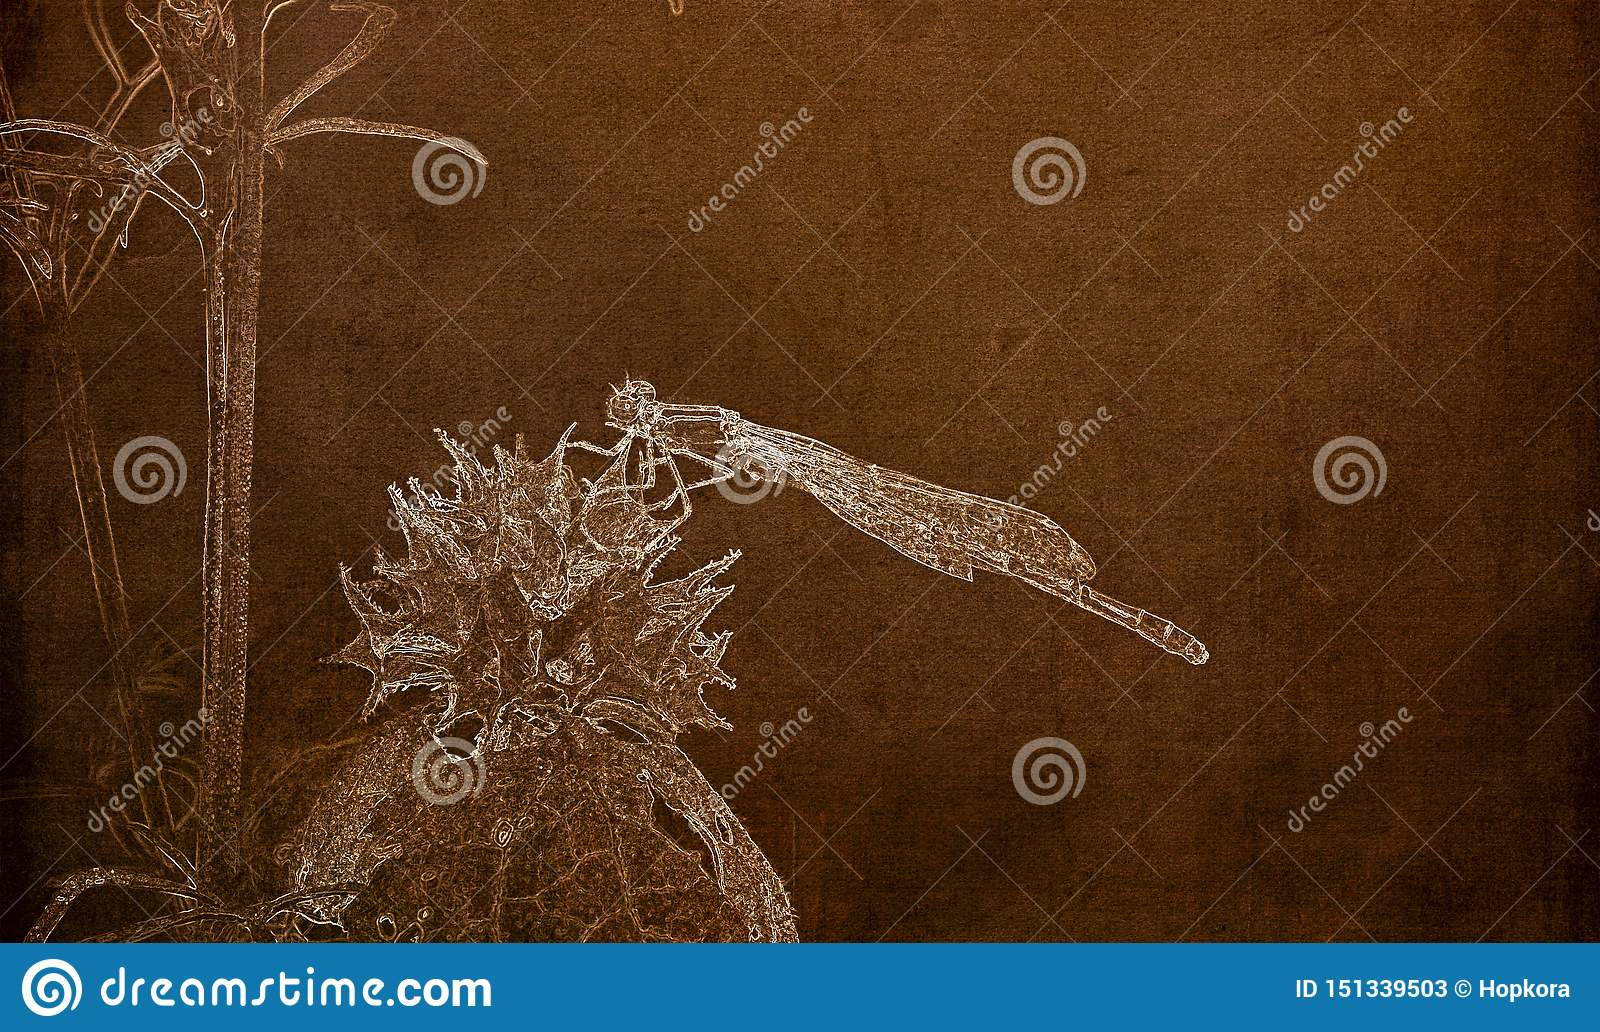 Illustration in Sepia of a Macro of Famiiar Bluet Enallagma civile Resting on a Dried Thistle Flower